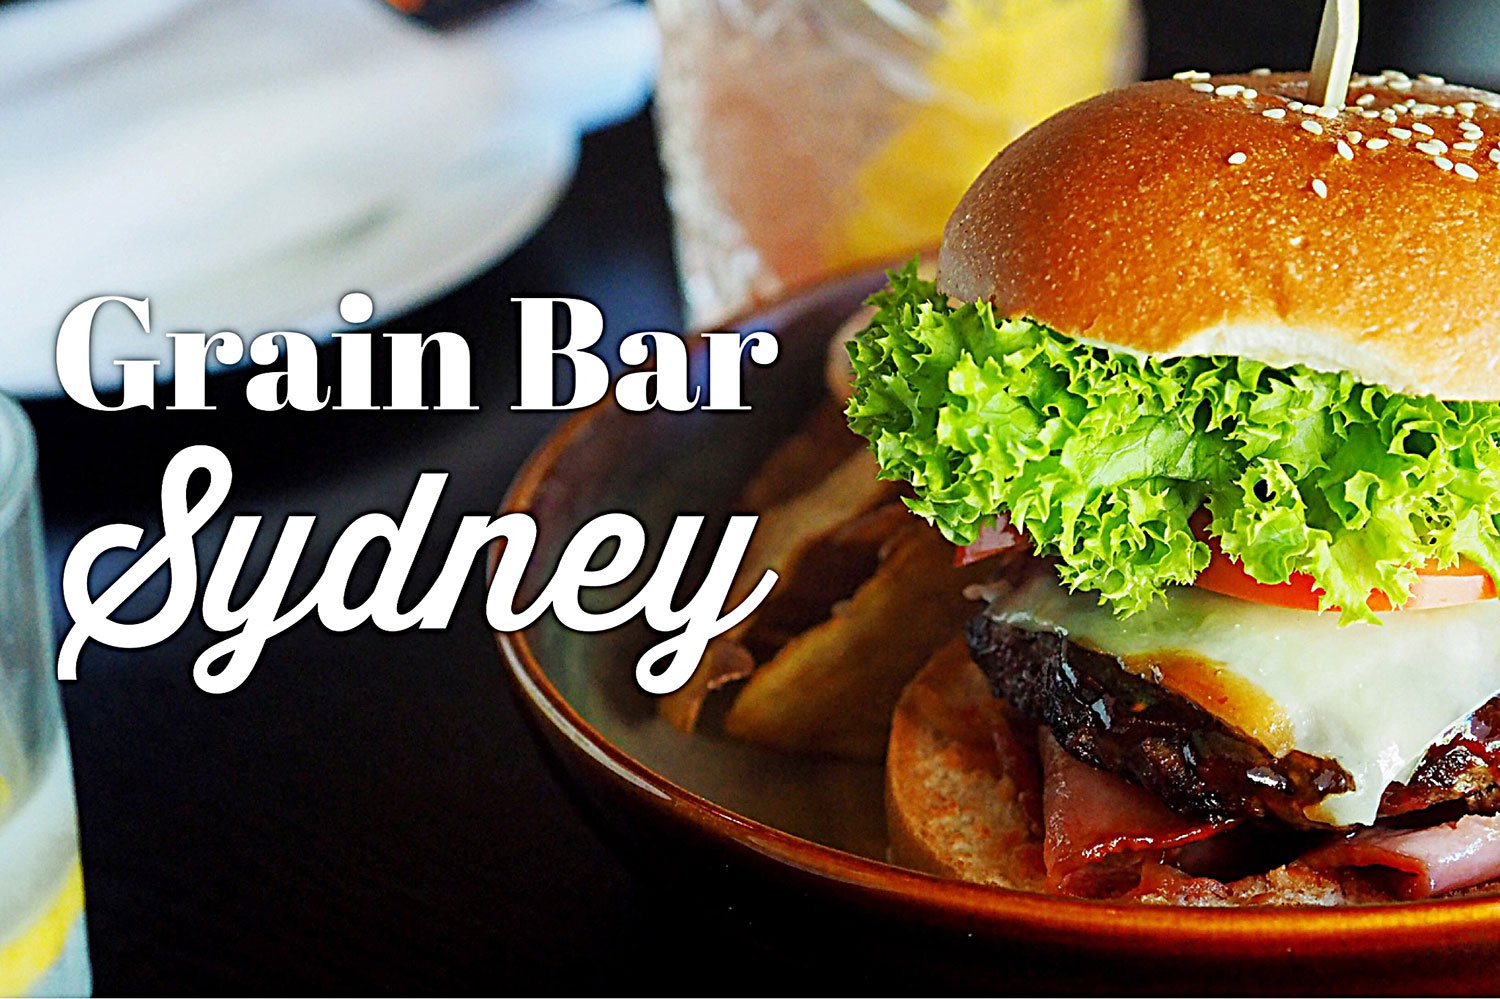 Grain Bar, Four Seasons, Sydney. Sydney Food Blog Review